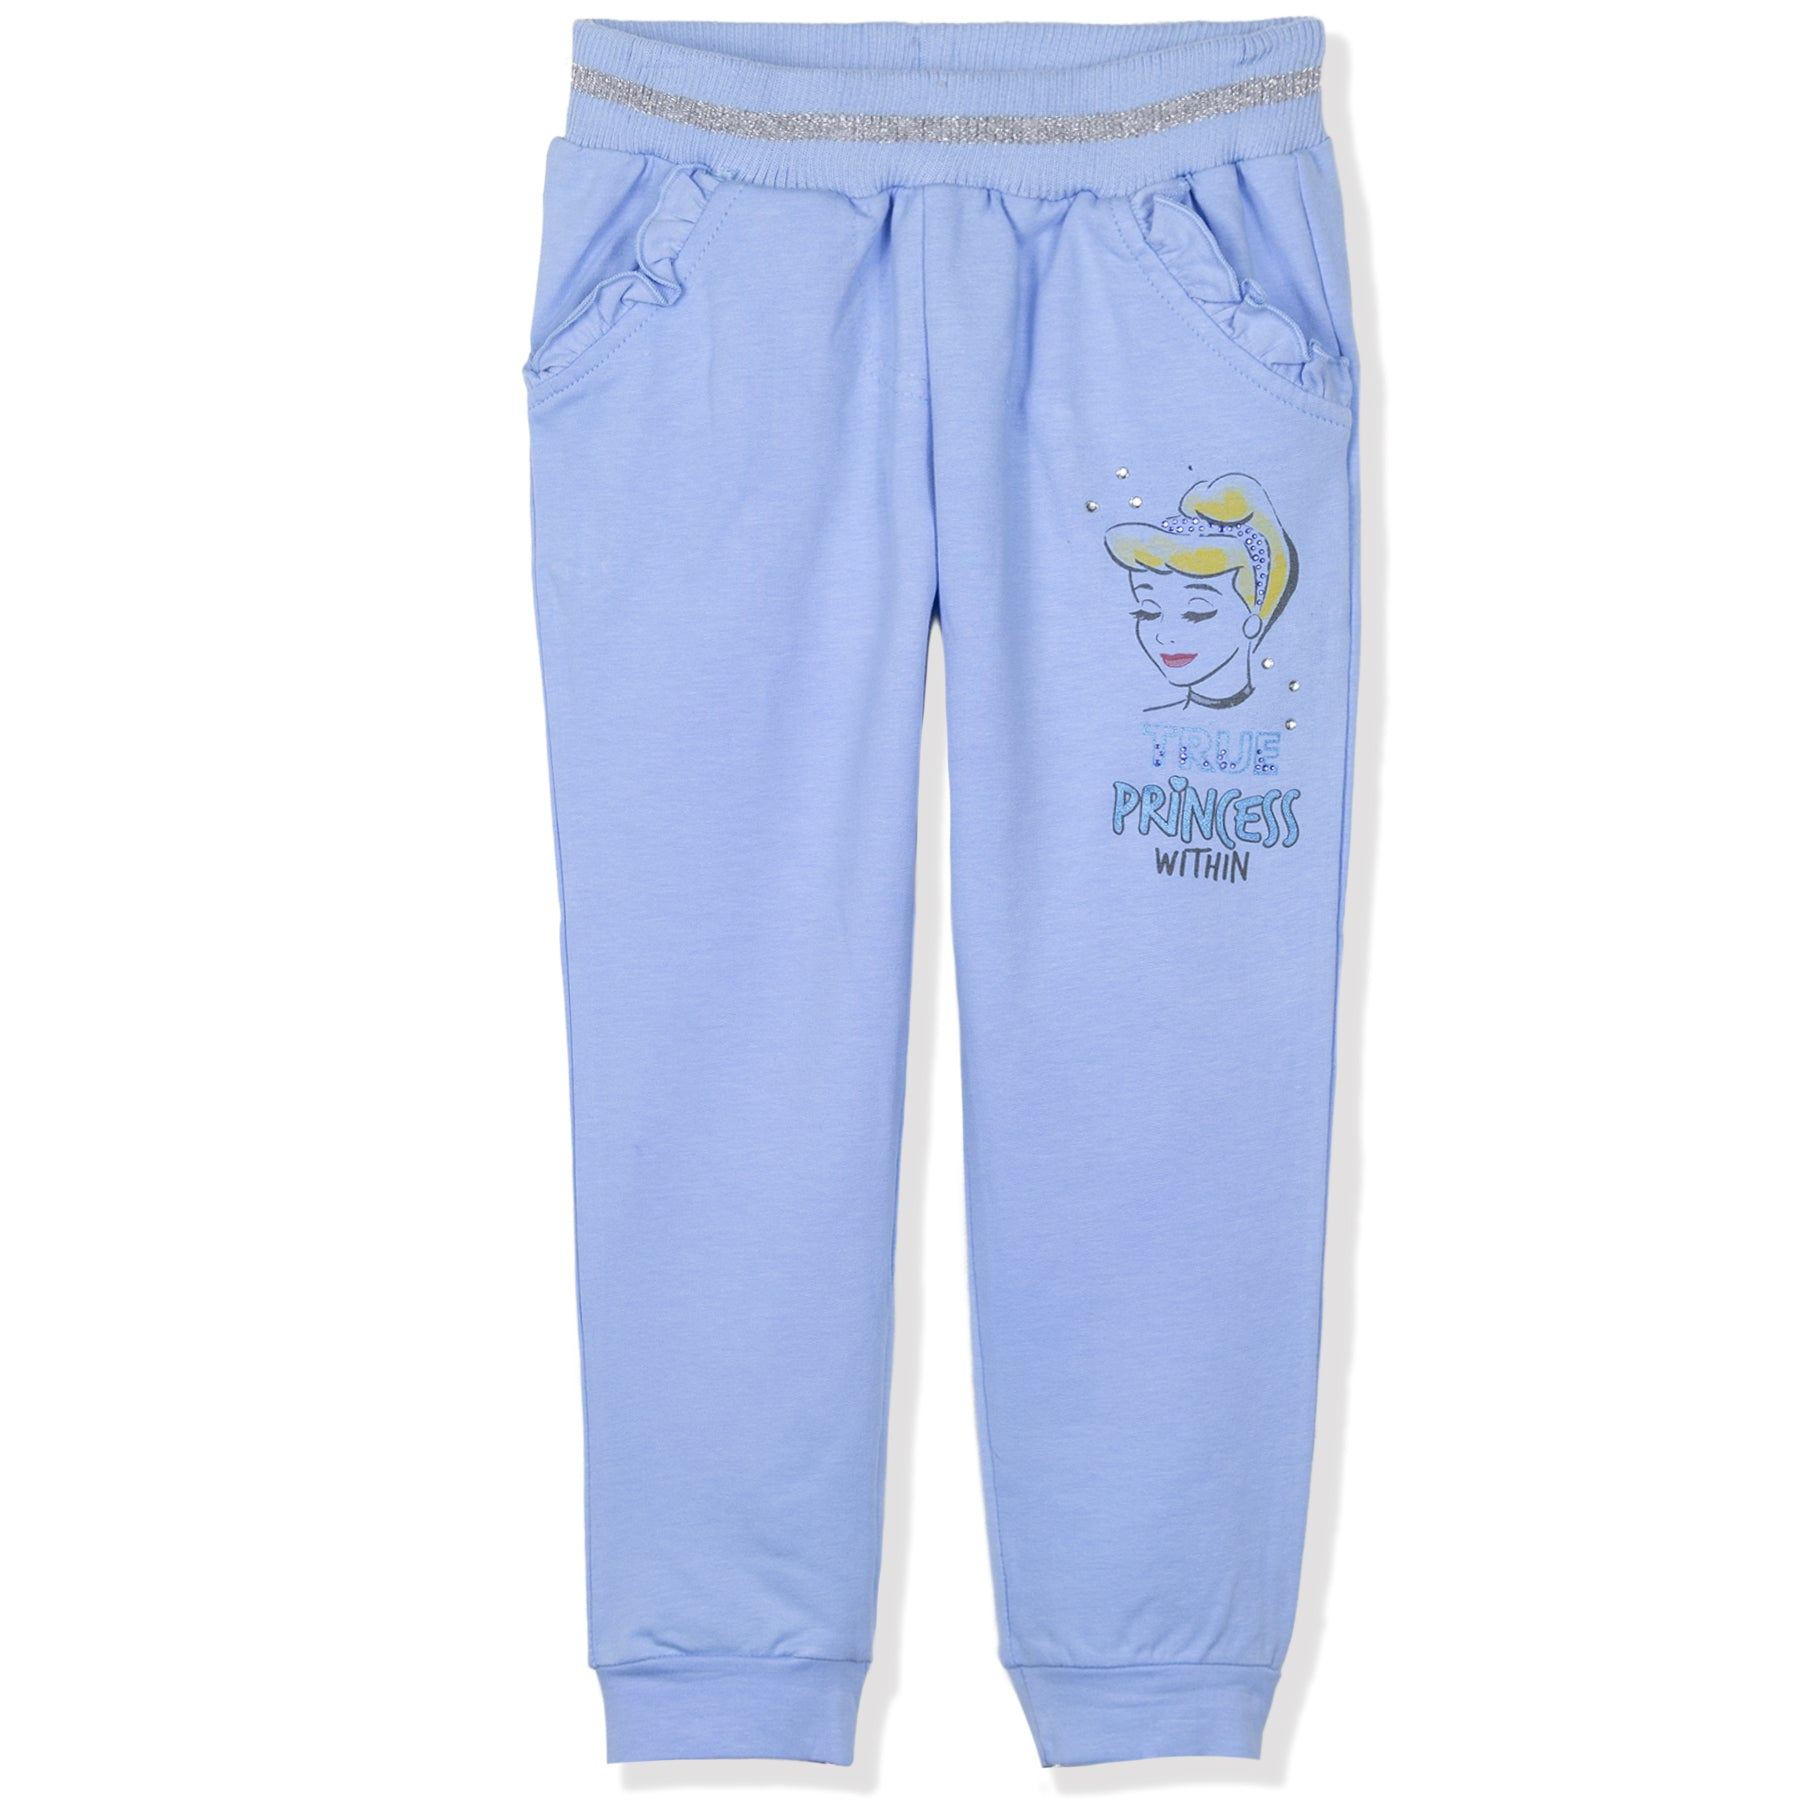 Disney Princess Girls Warm Joggers, Trousers 95% Cotton 2-6 Years - Blue